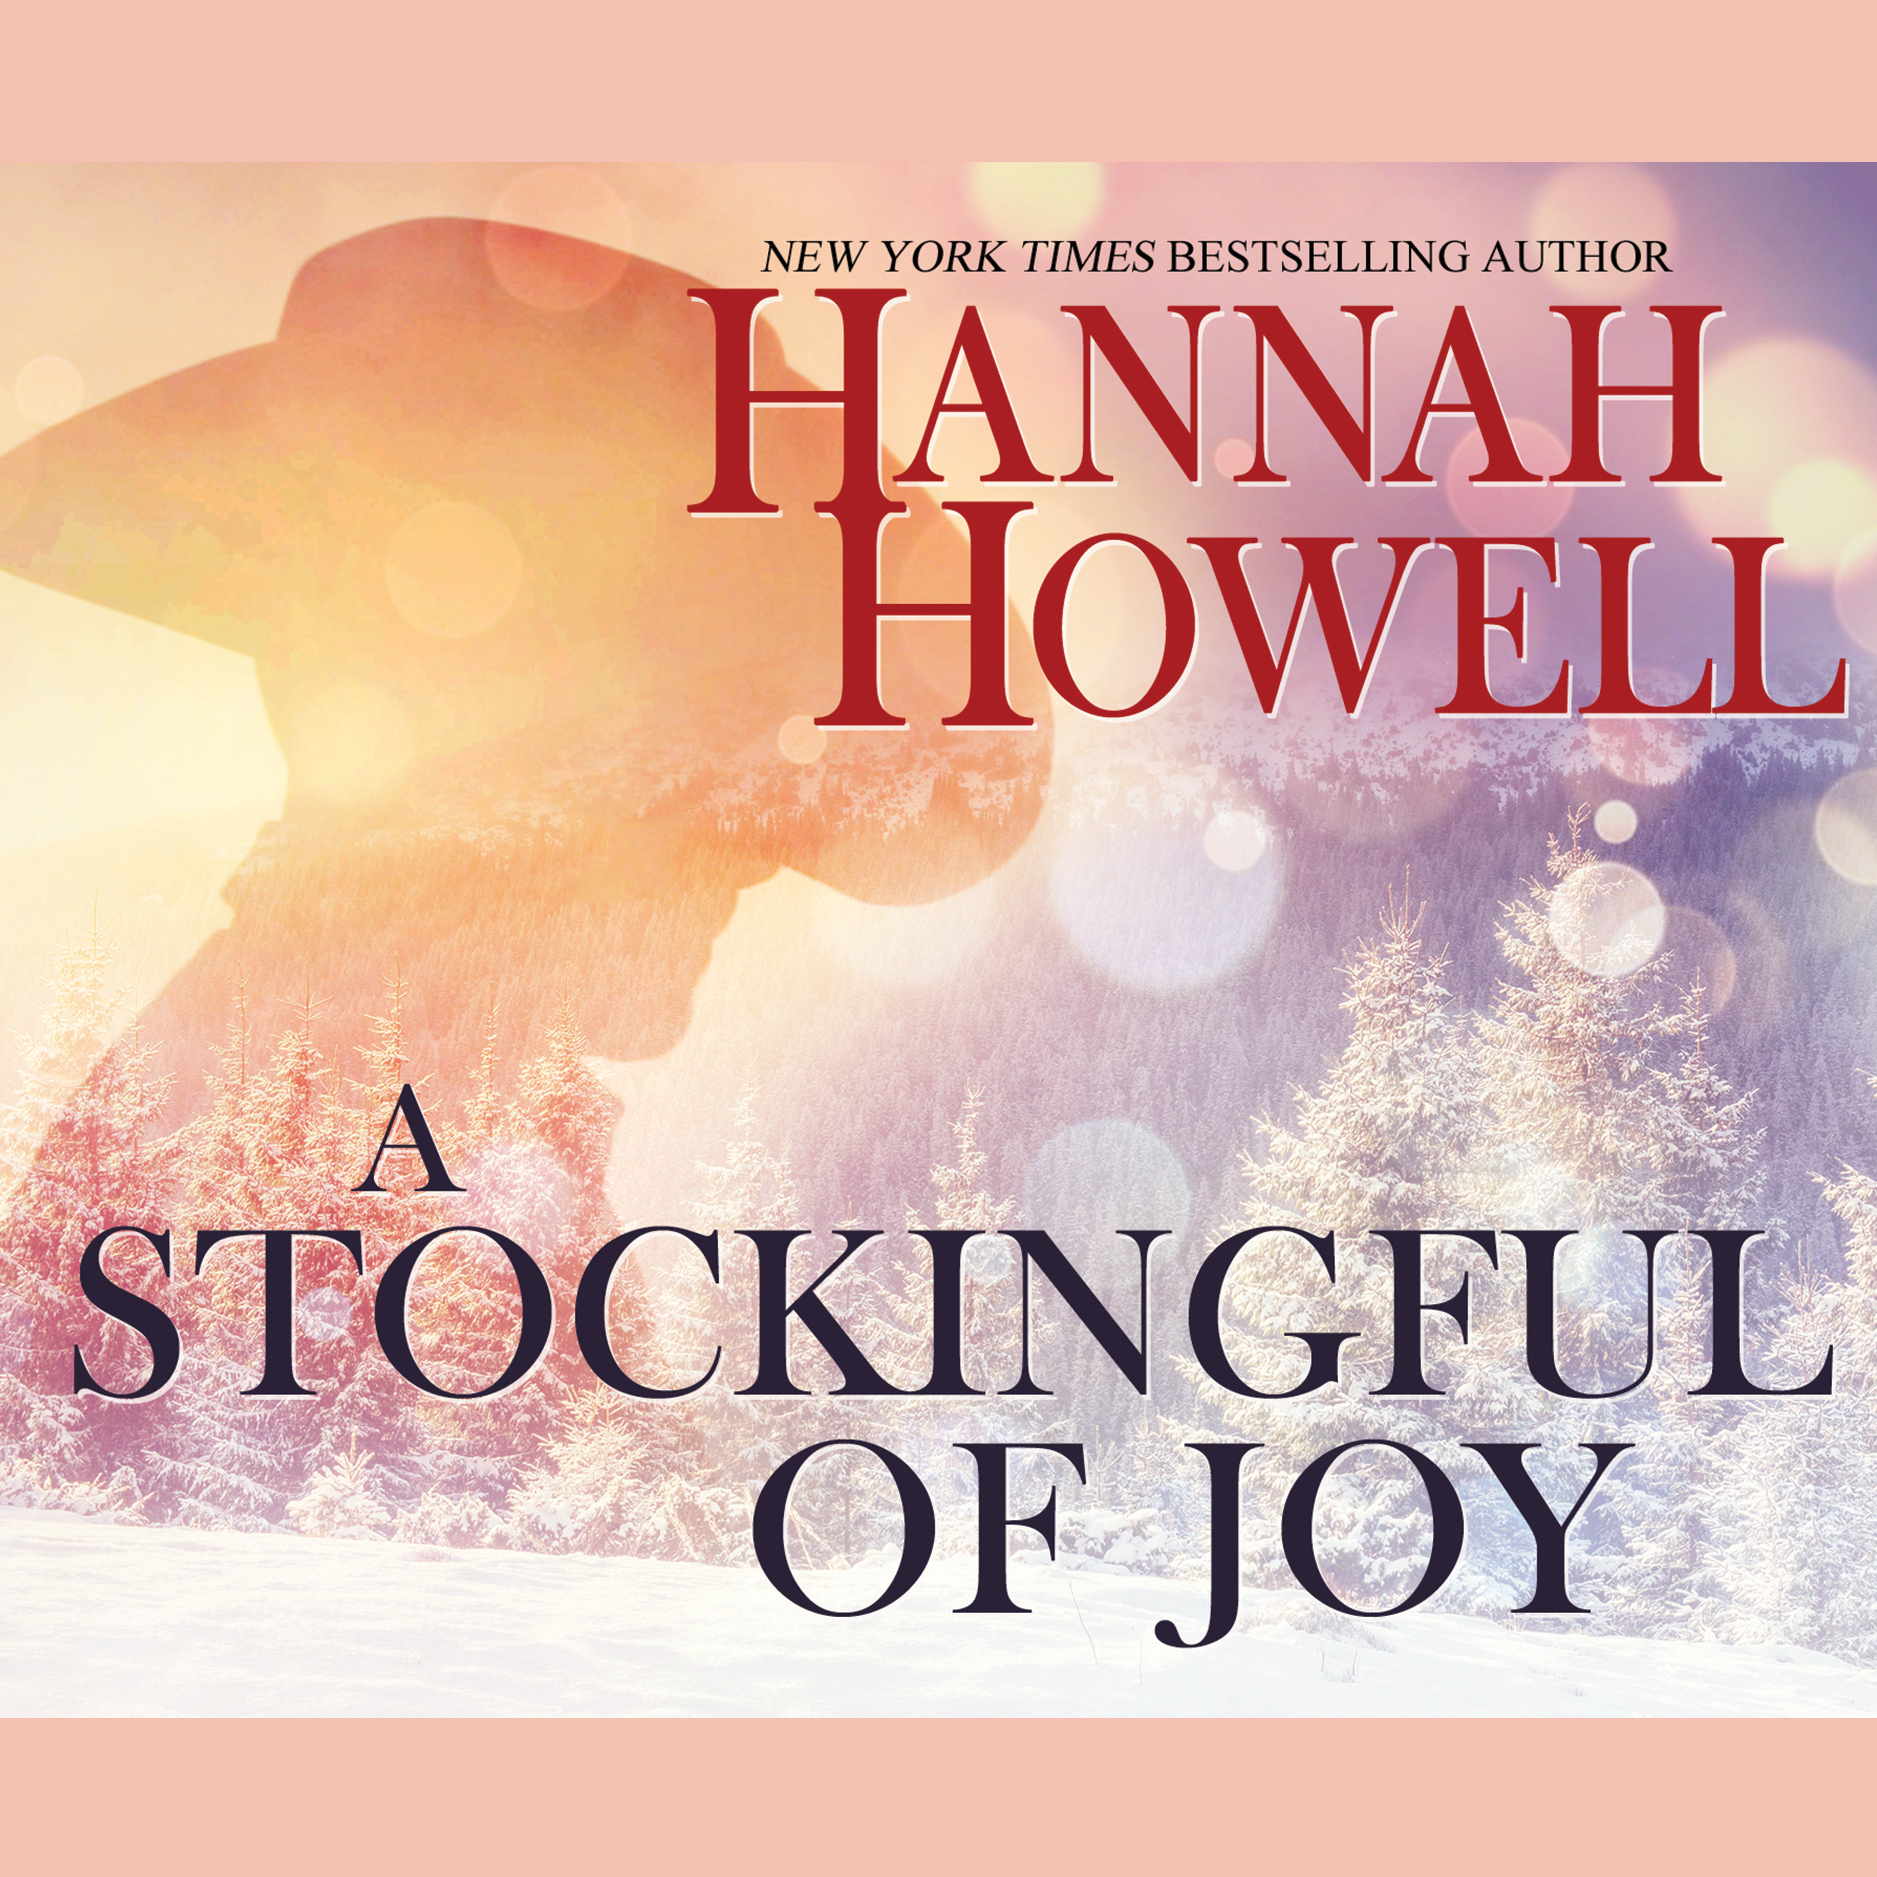 Printable A Stockingful of Joy Audiobook Cover Art